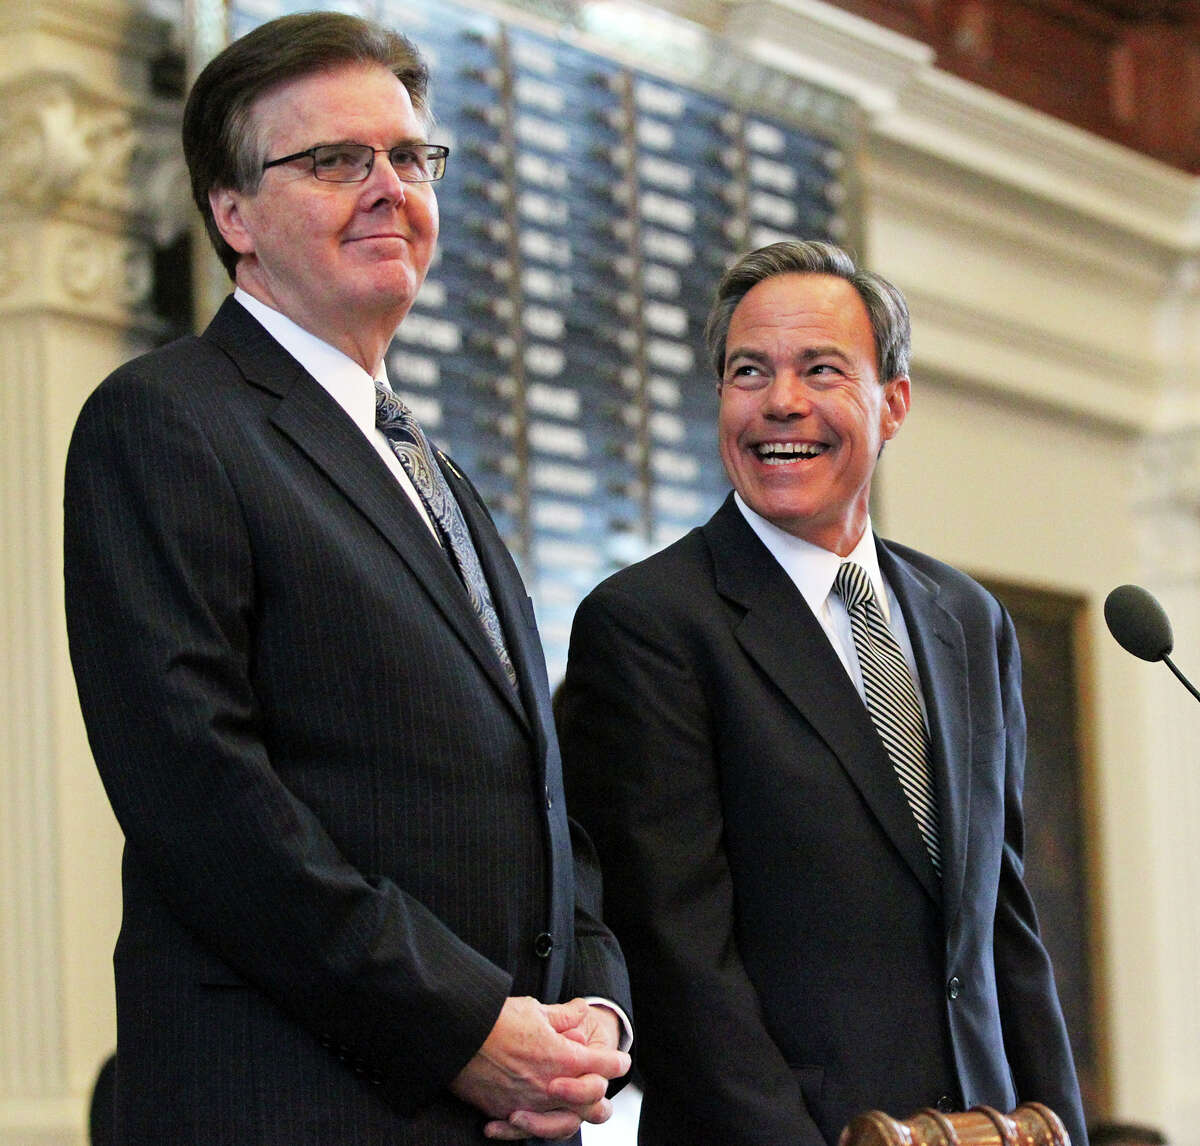 Lt. Gov. Dan Patrick, left, personally called out House Speaker Joe Straus, right, for the failure of the bathroom bill after the end of the special session in August. The House never brought the bill to a vote.